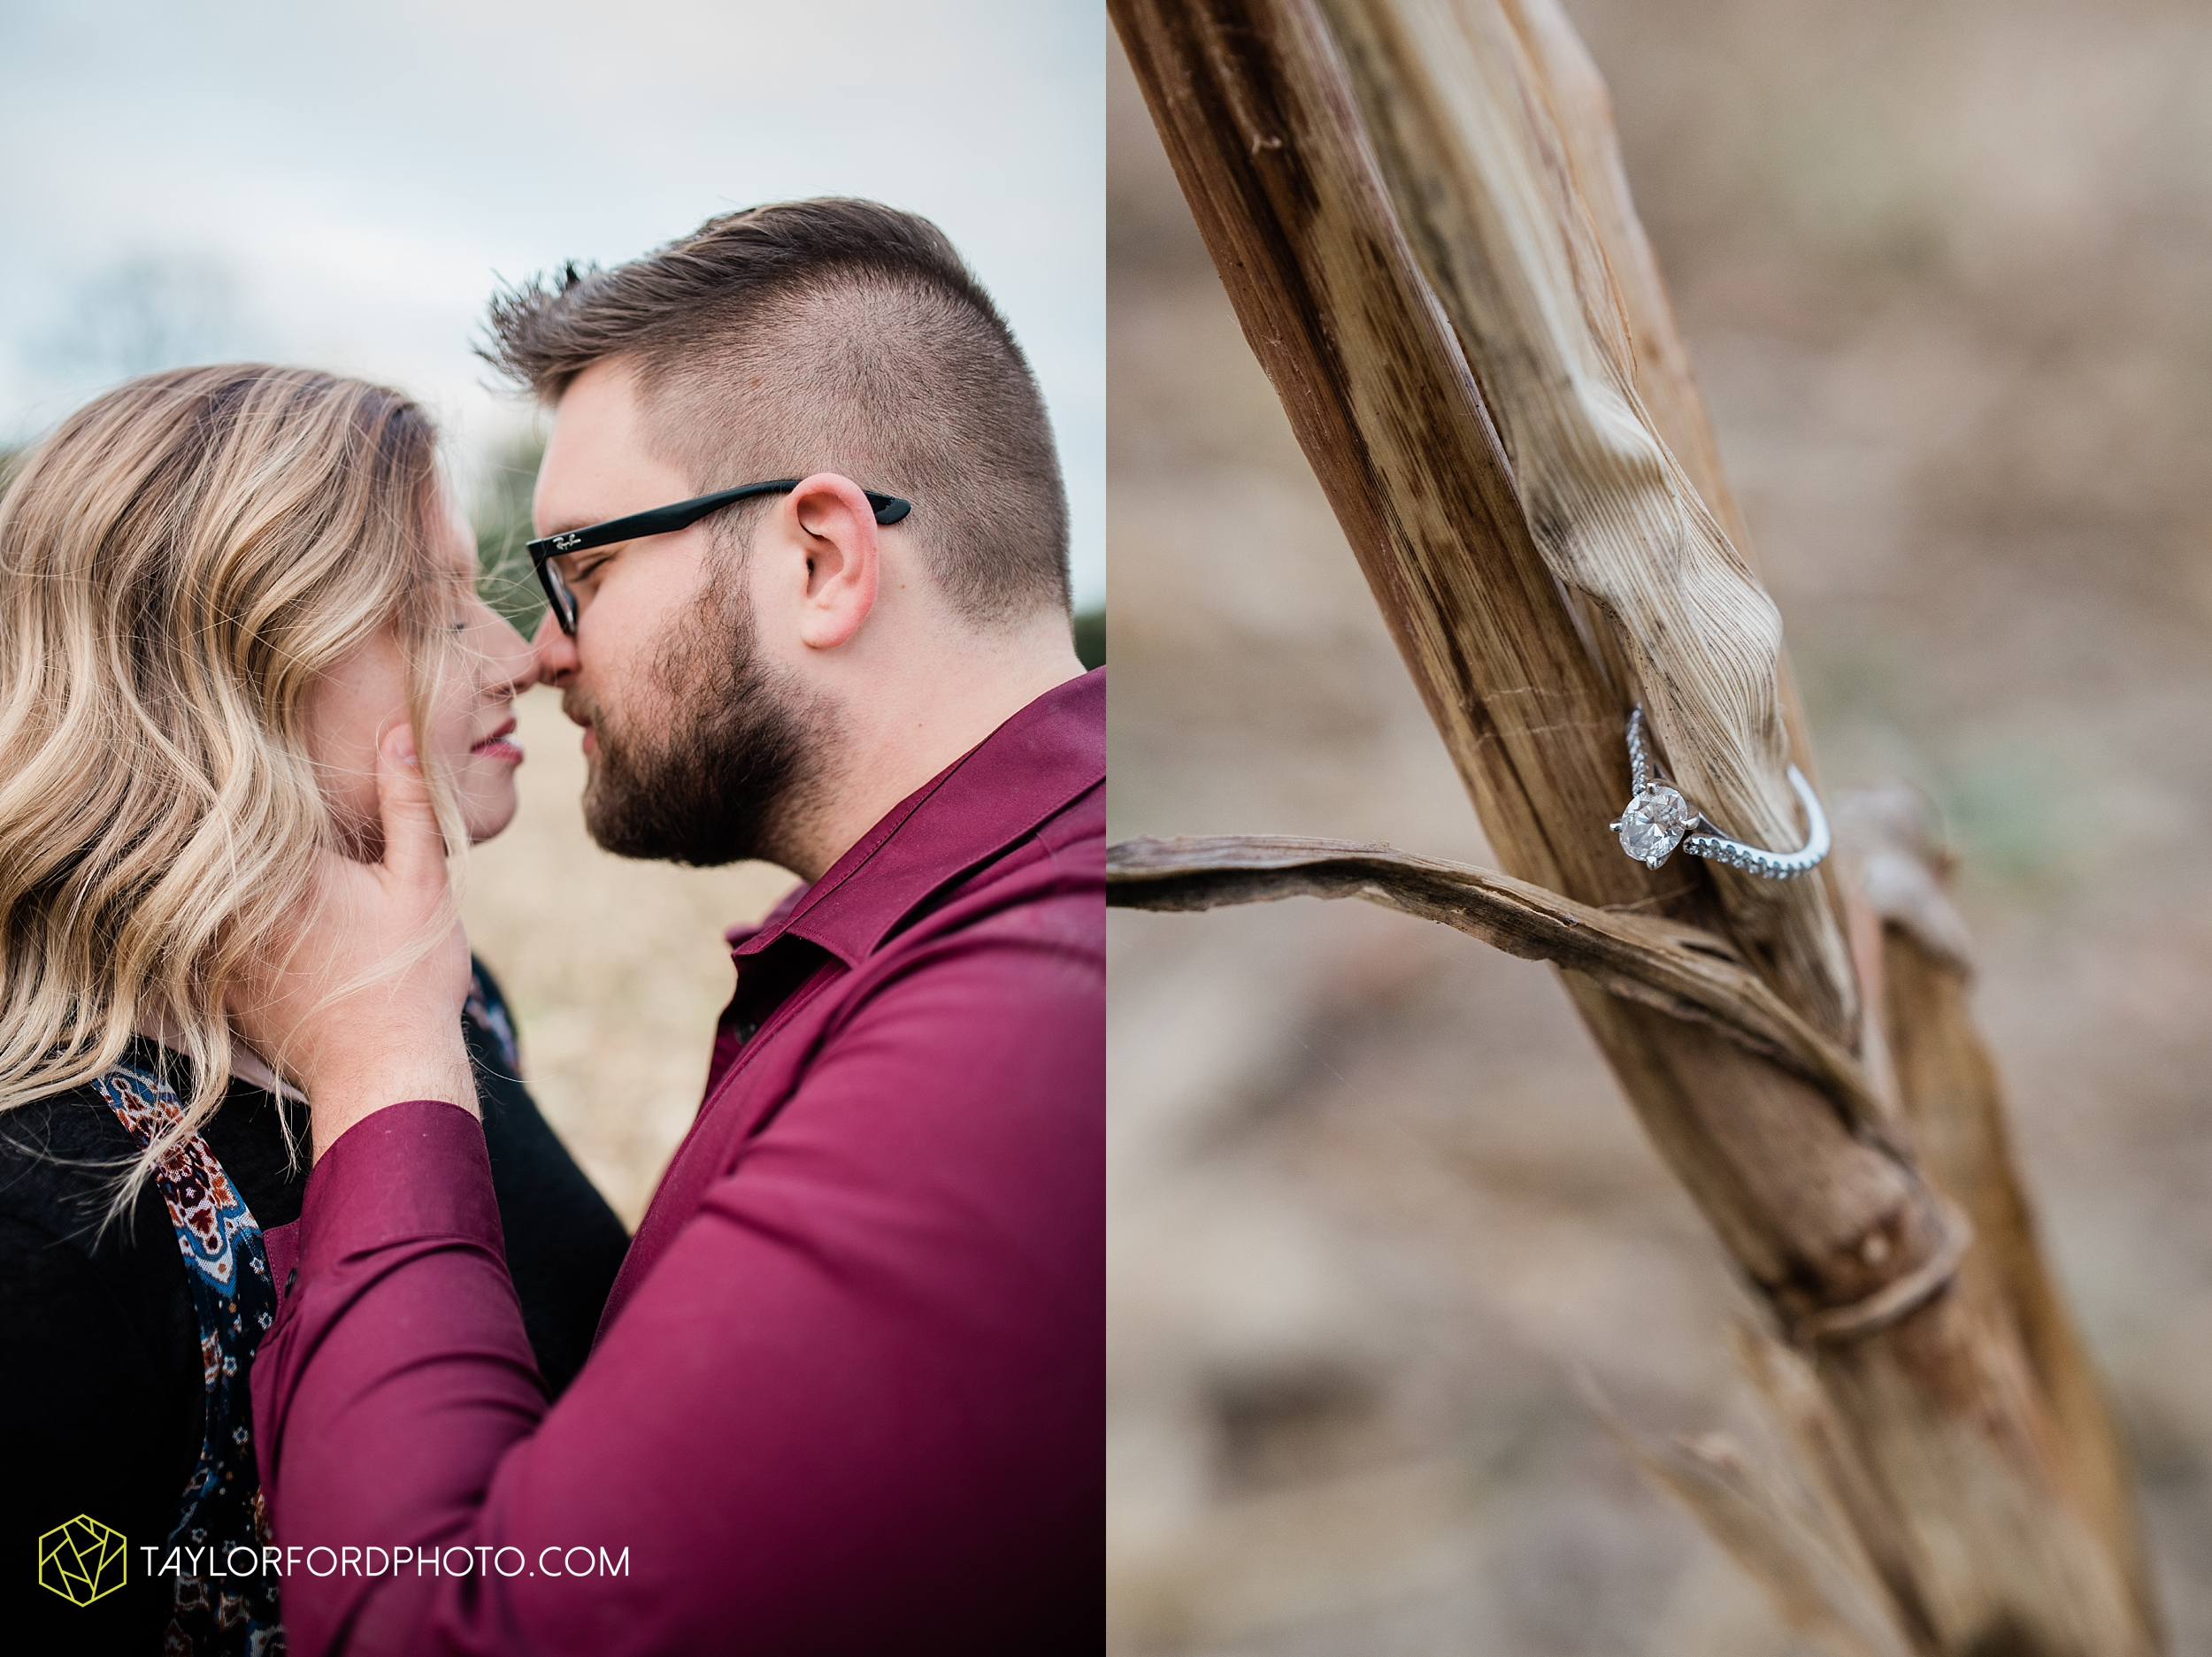 downtown-fort-wayne-engagement-foster-park-bravas-wunderkamer-fox-island-quarry-photographer-taylor-ford-photography_0977.jpg